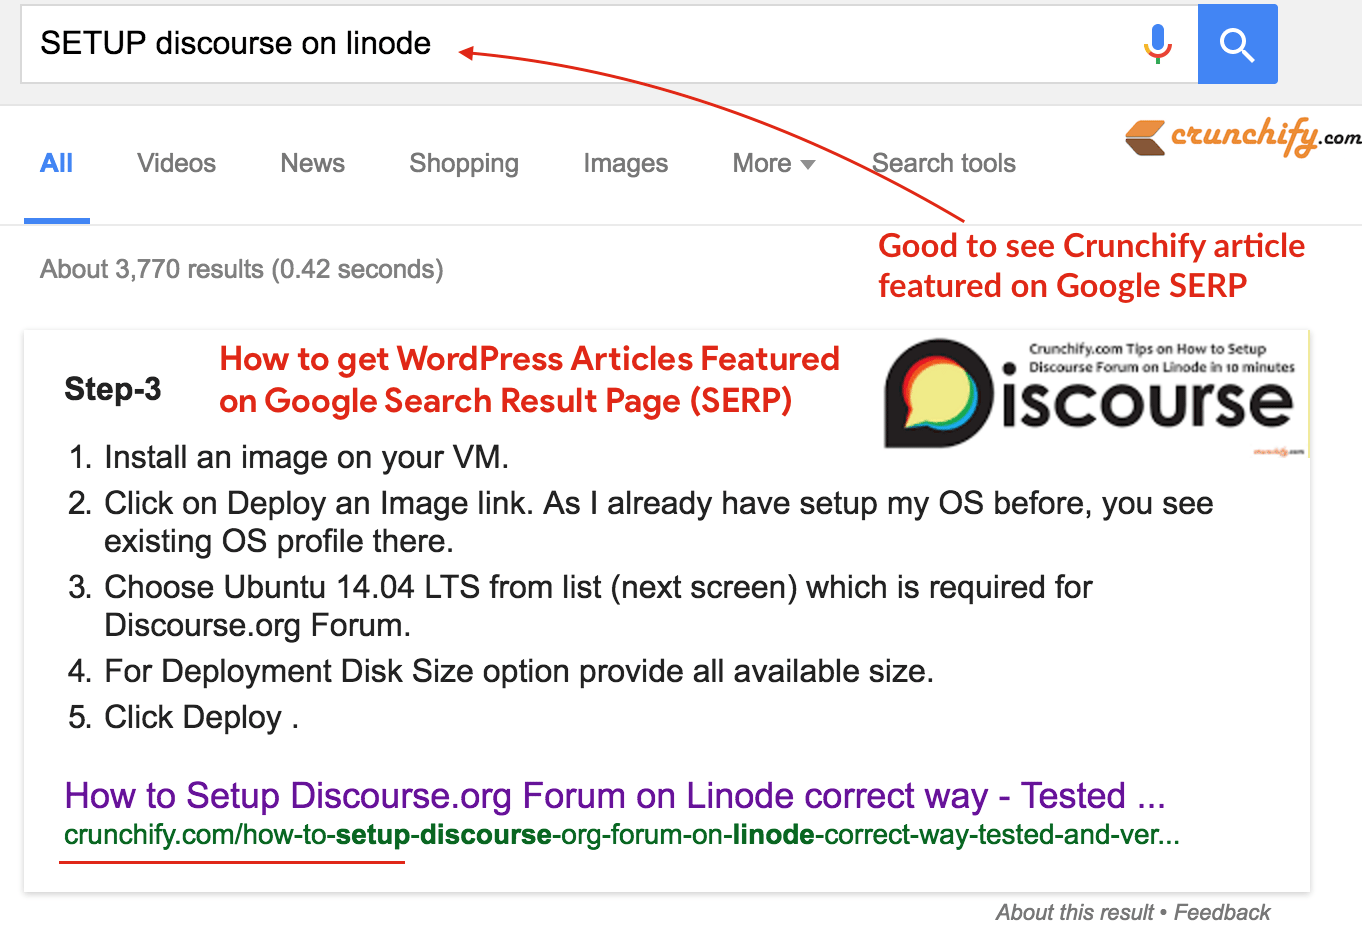 How to get your WordPress Article Featured on Google Search